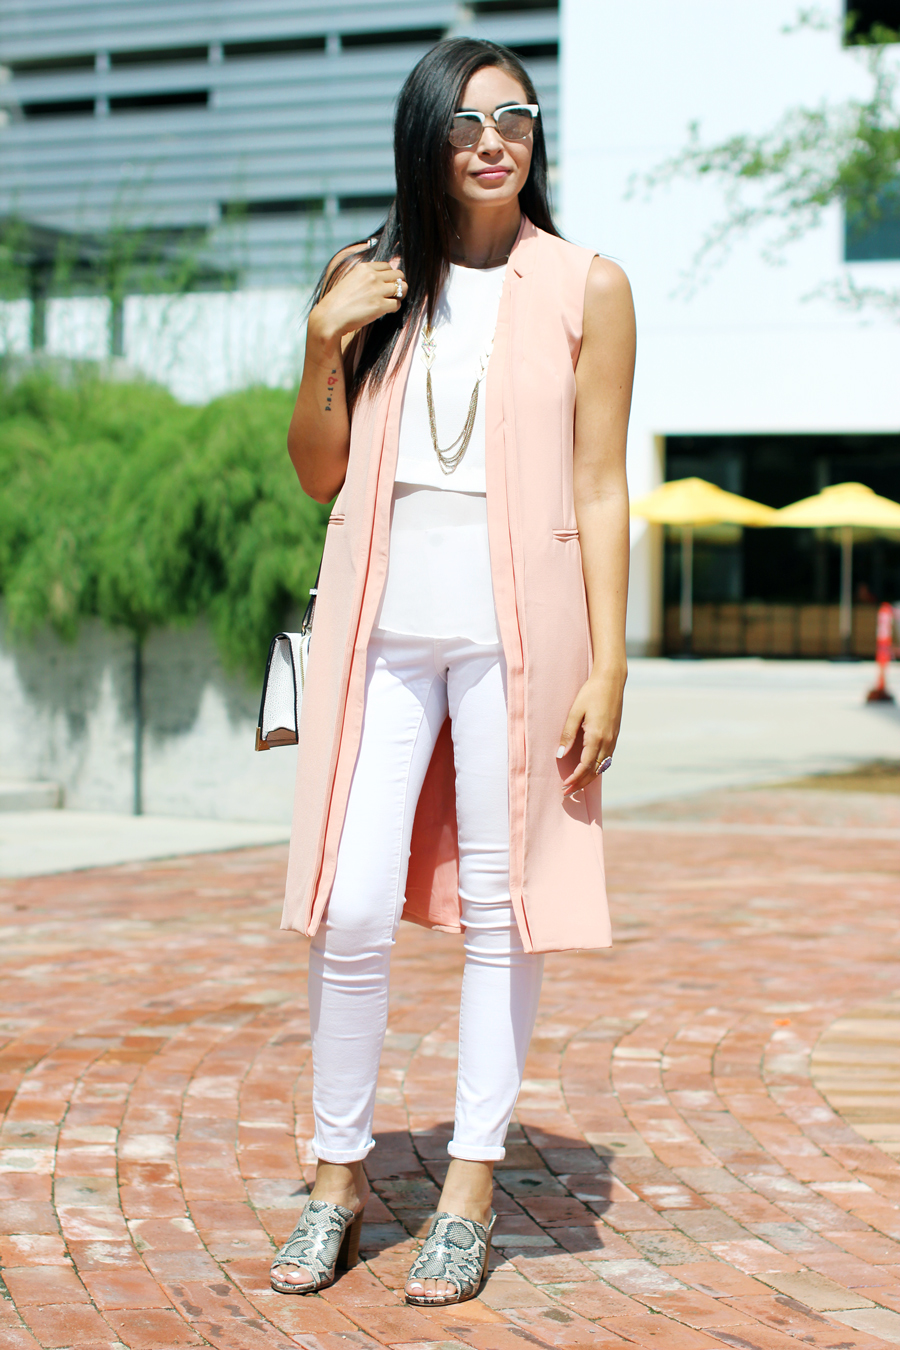 FTT-LILY-JAMES-COLLECTION-PINK-VEST-WHITE-LOOK-MULES-4